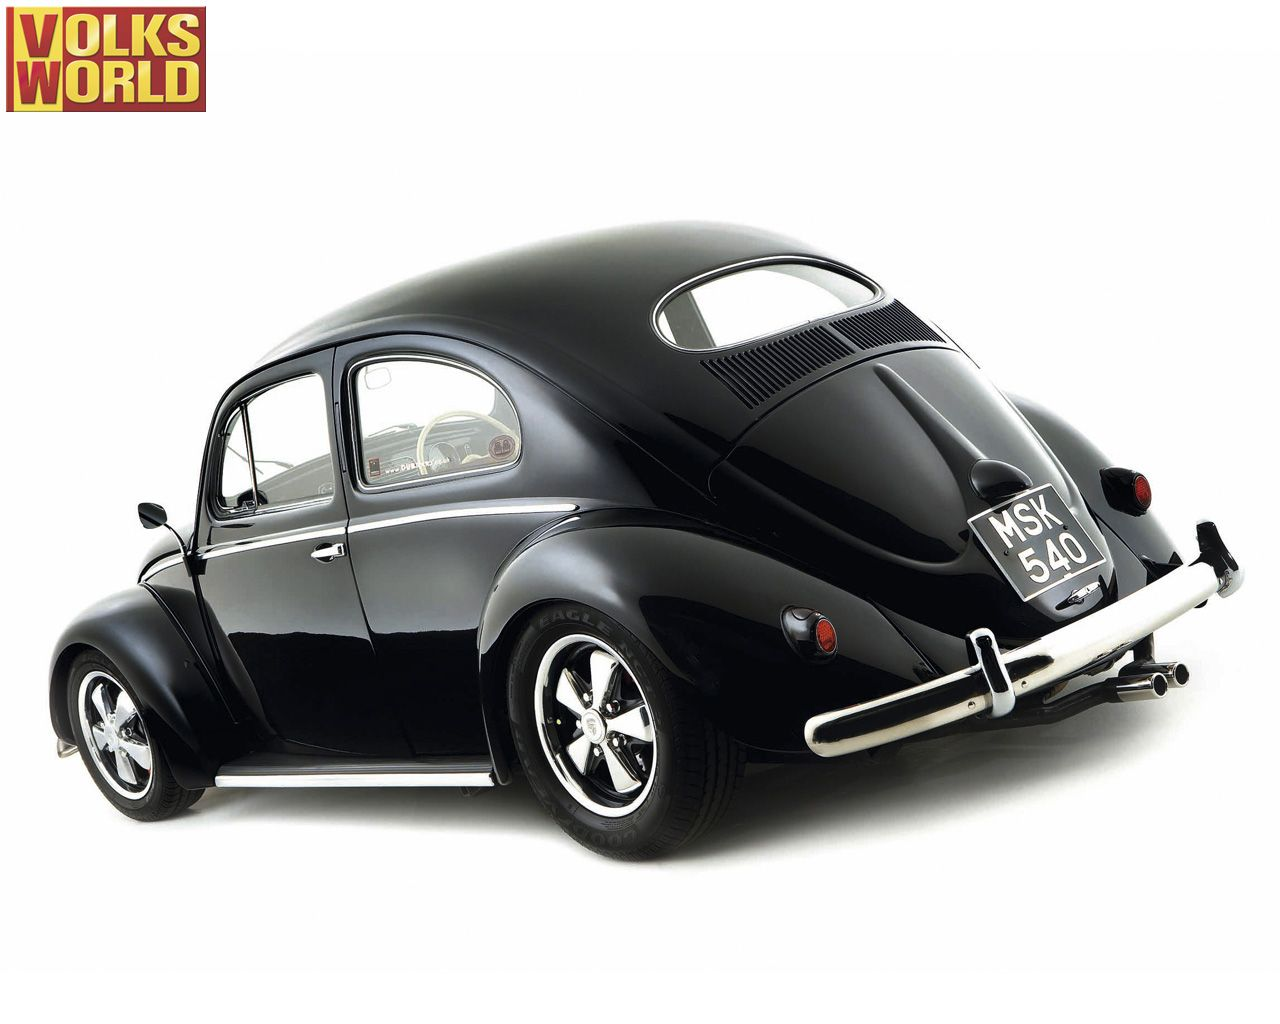 Volks World Oval bug